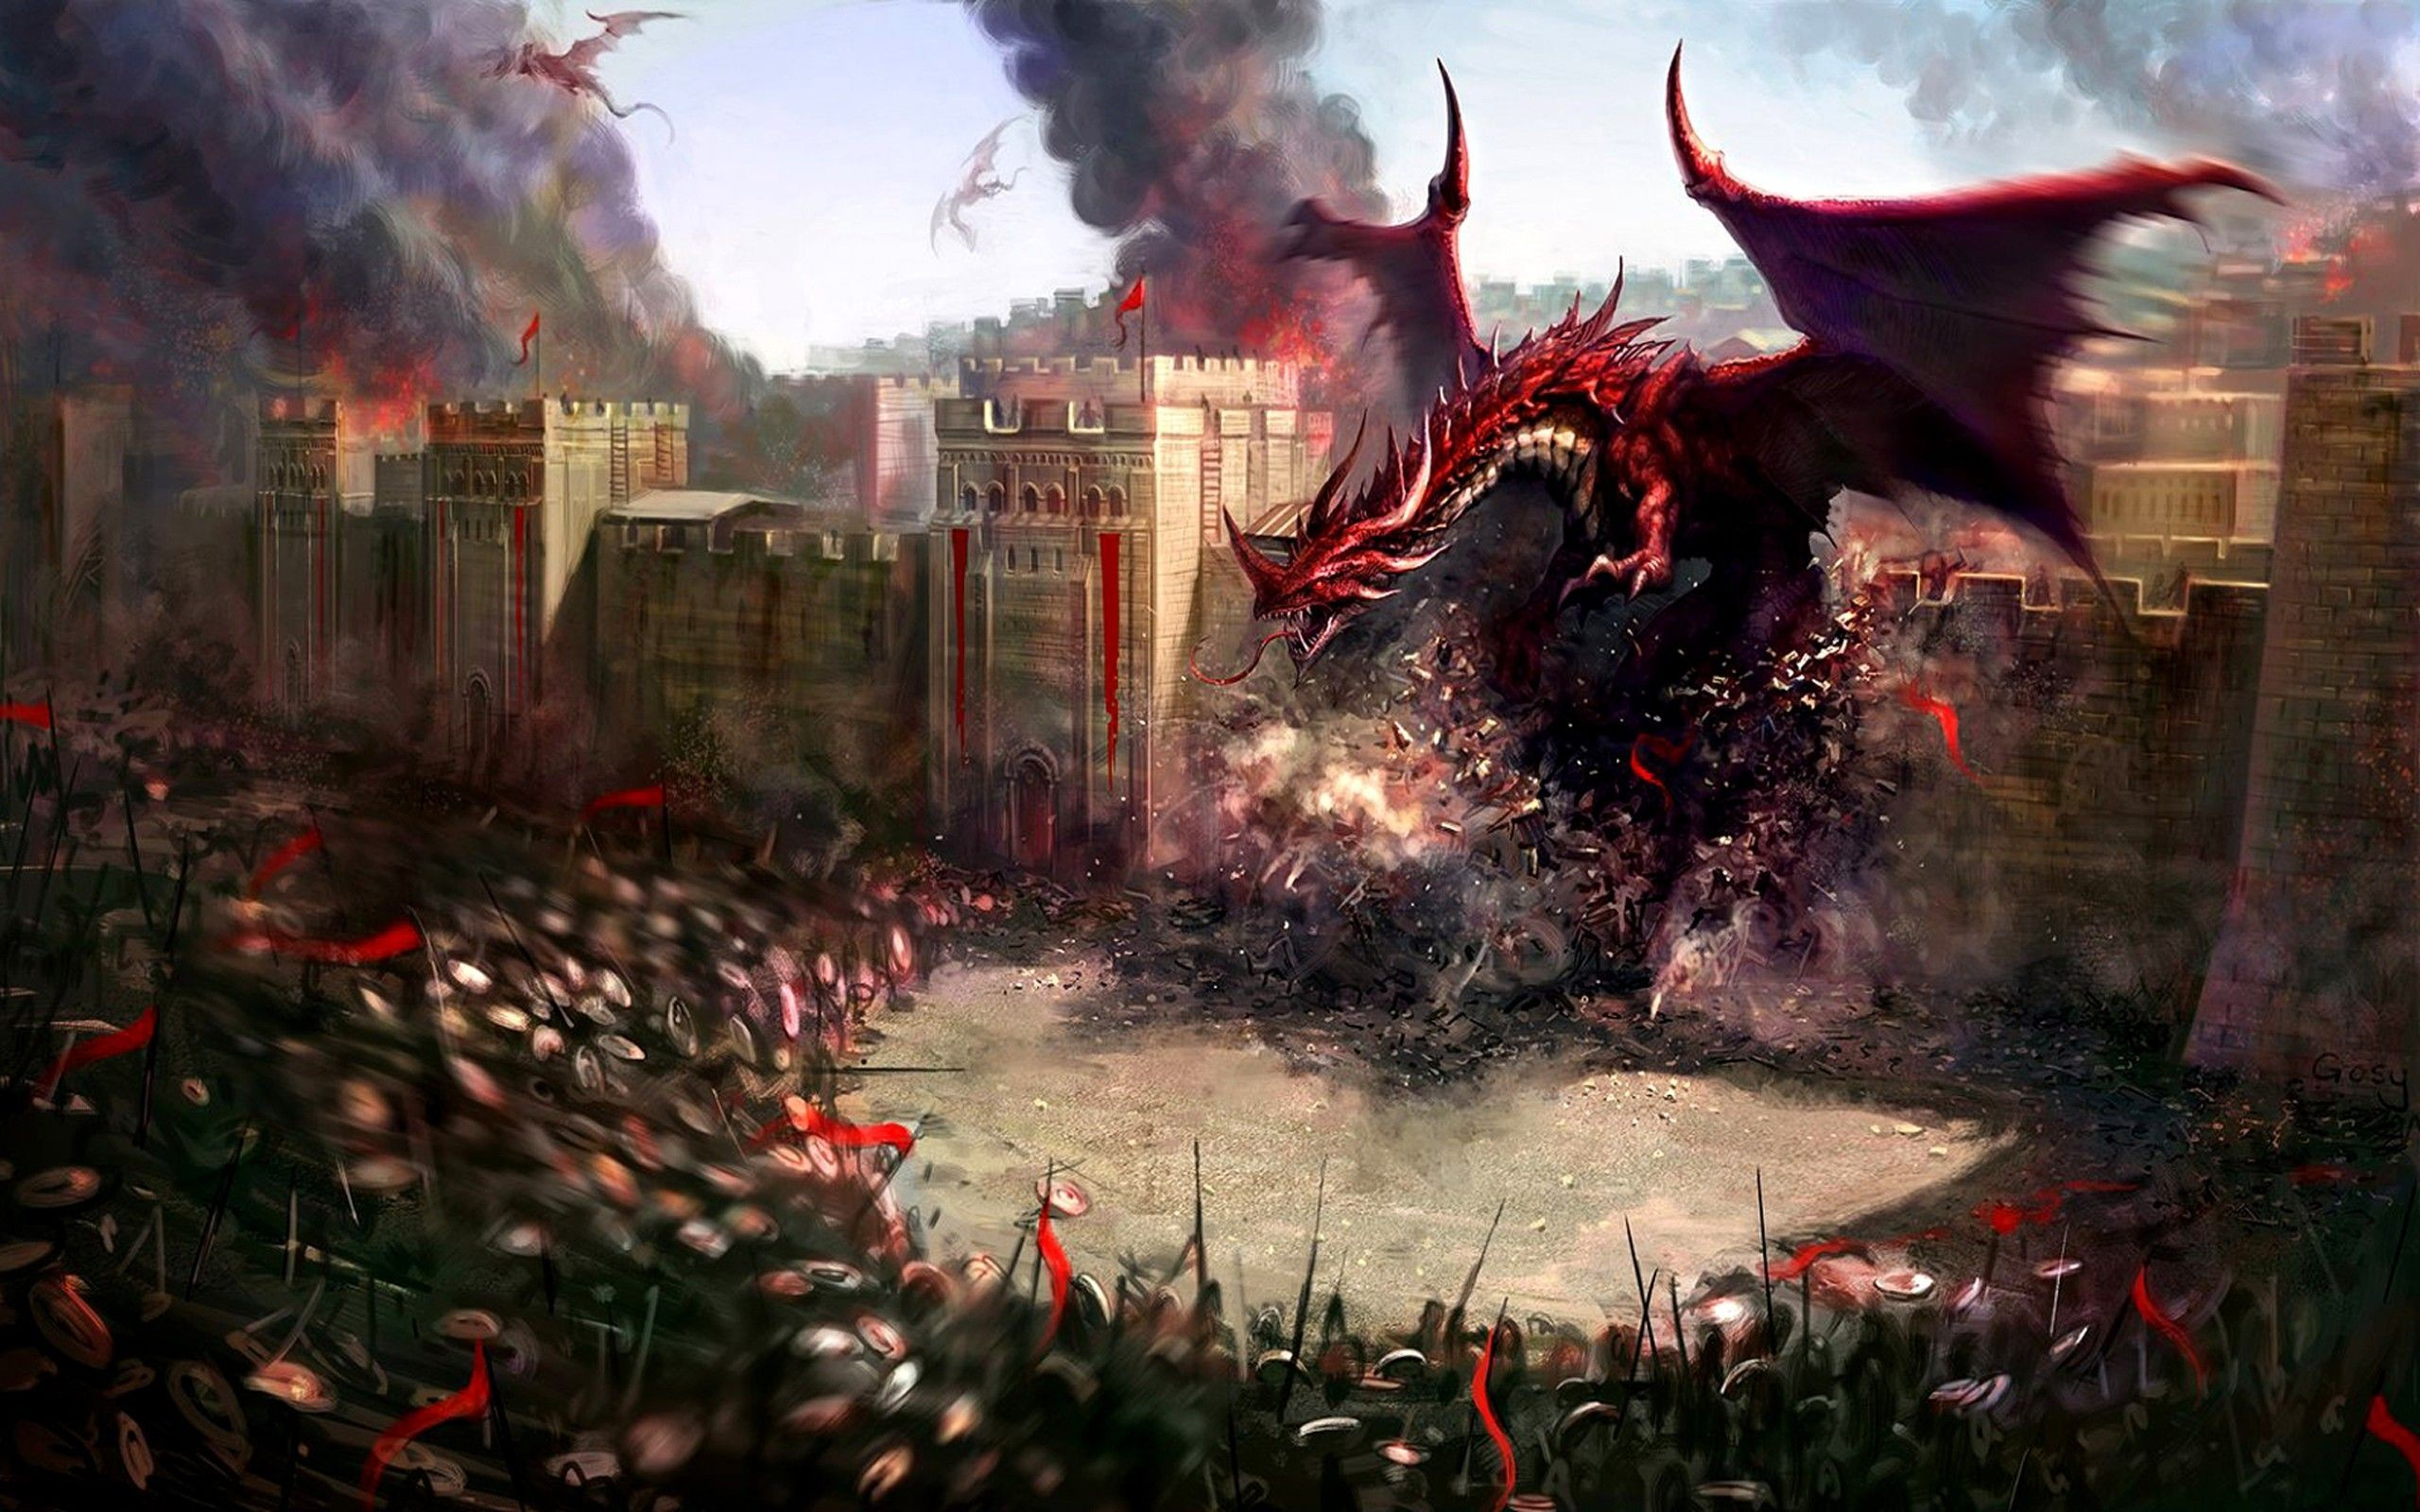 wallpaper.wiki-HD-Dungeons-And-Dragons-Photos-1-